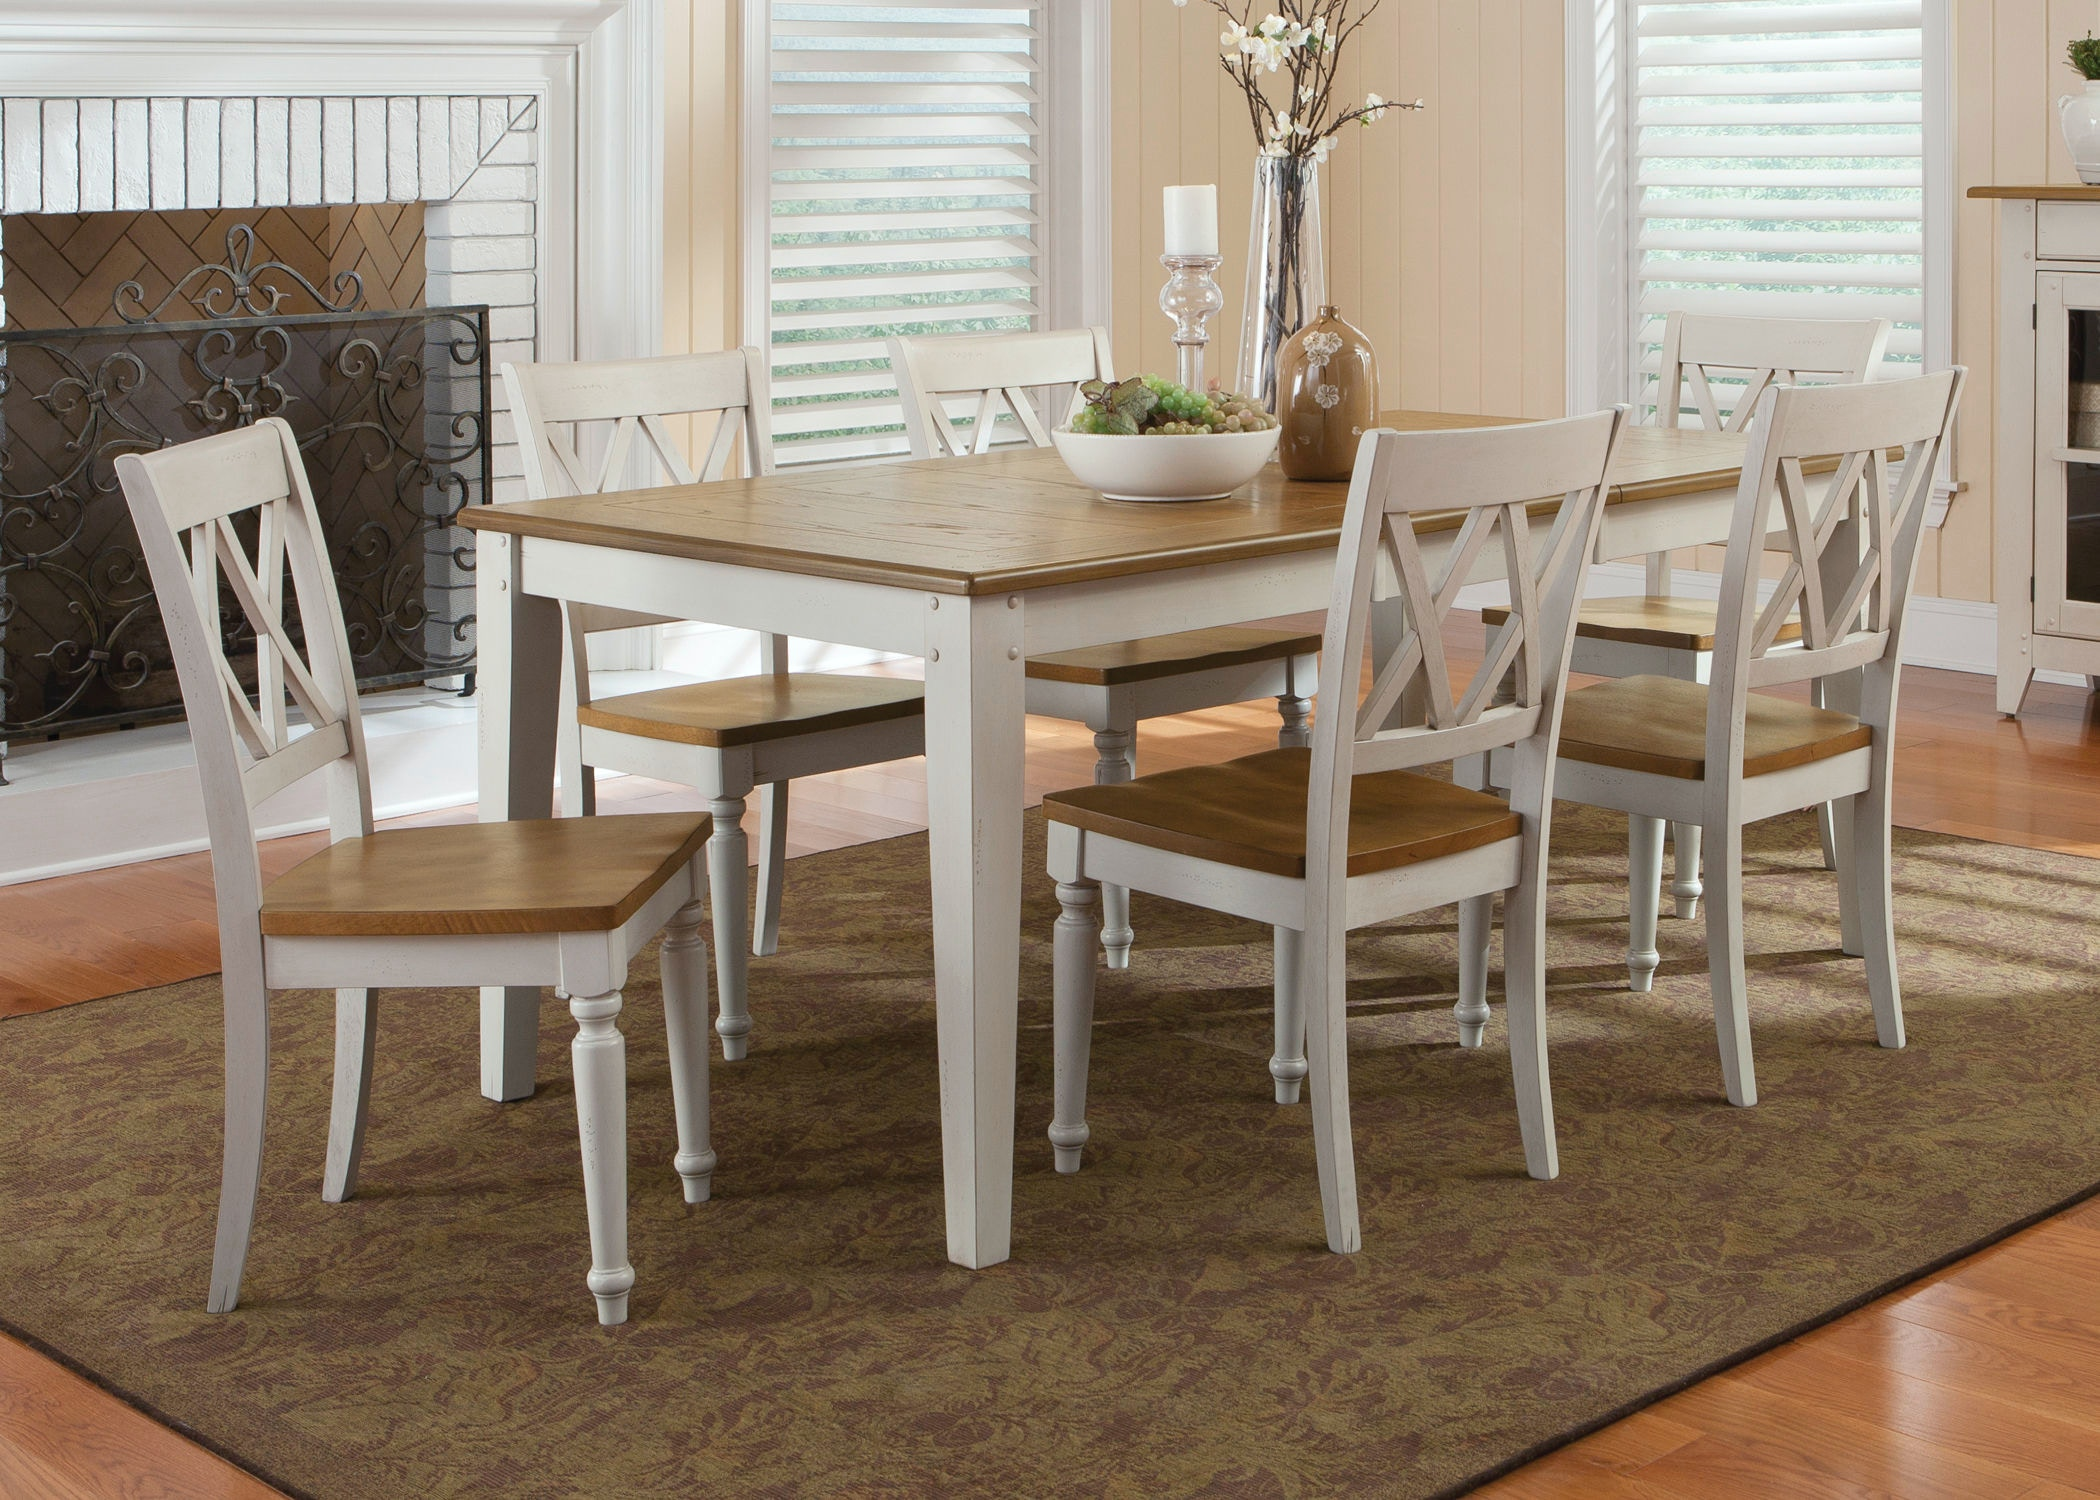 Genial Liberty Furniture Dining Room Rectangular Leg Table 841 T4074 At Thornton  Furniture